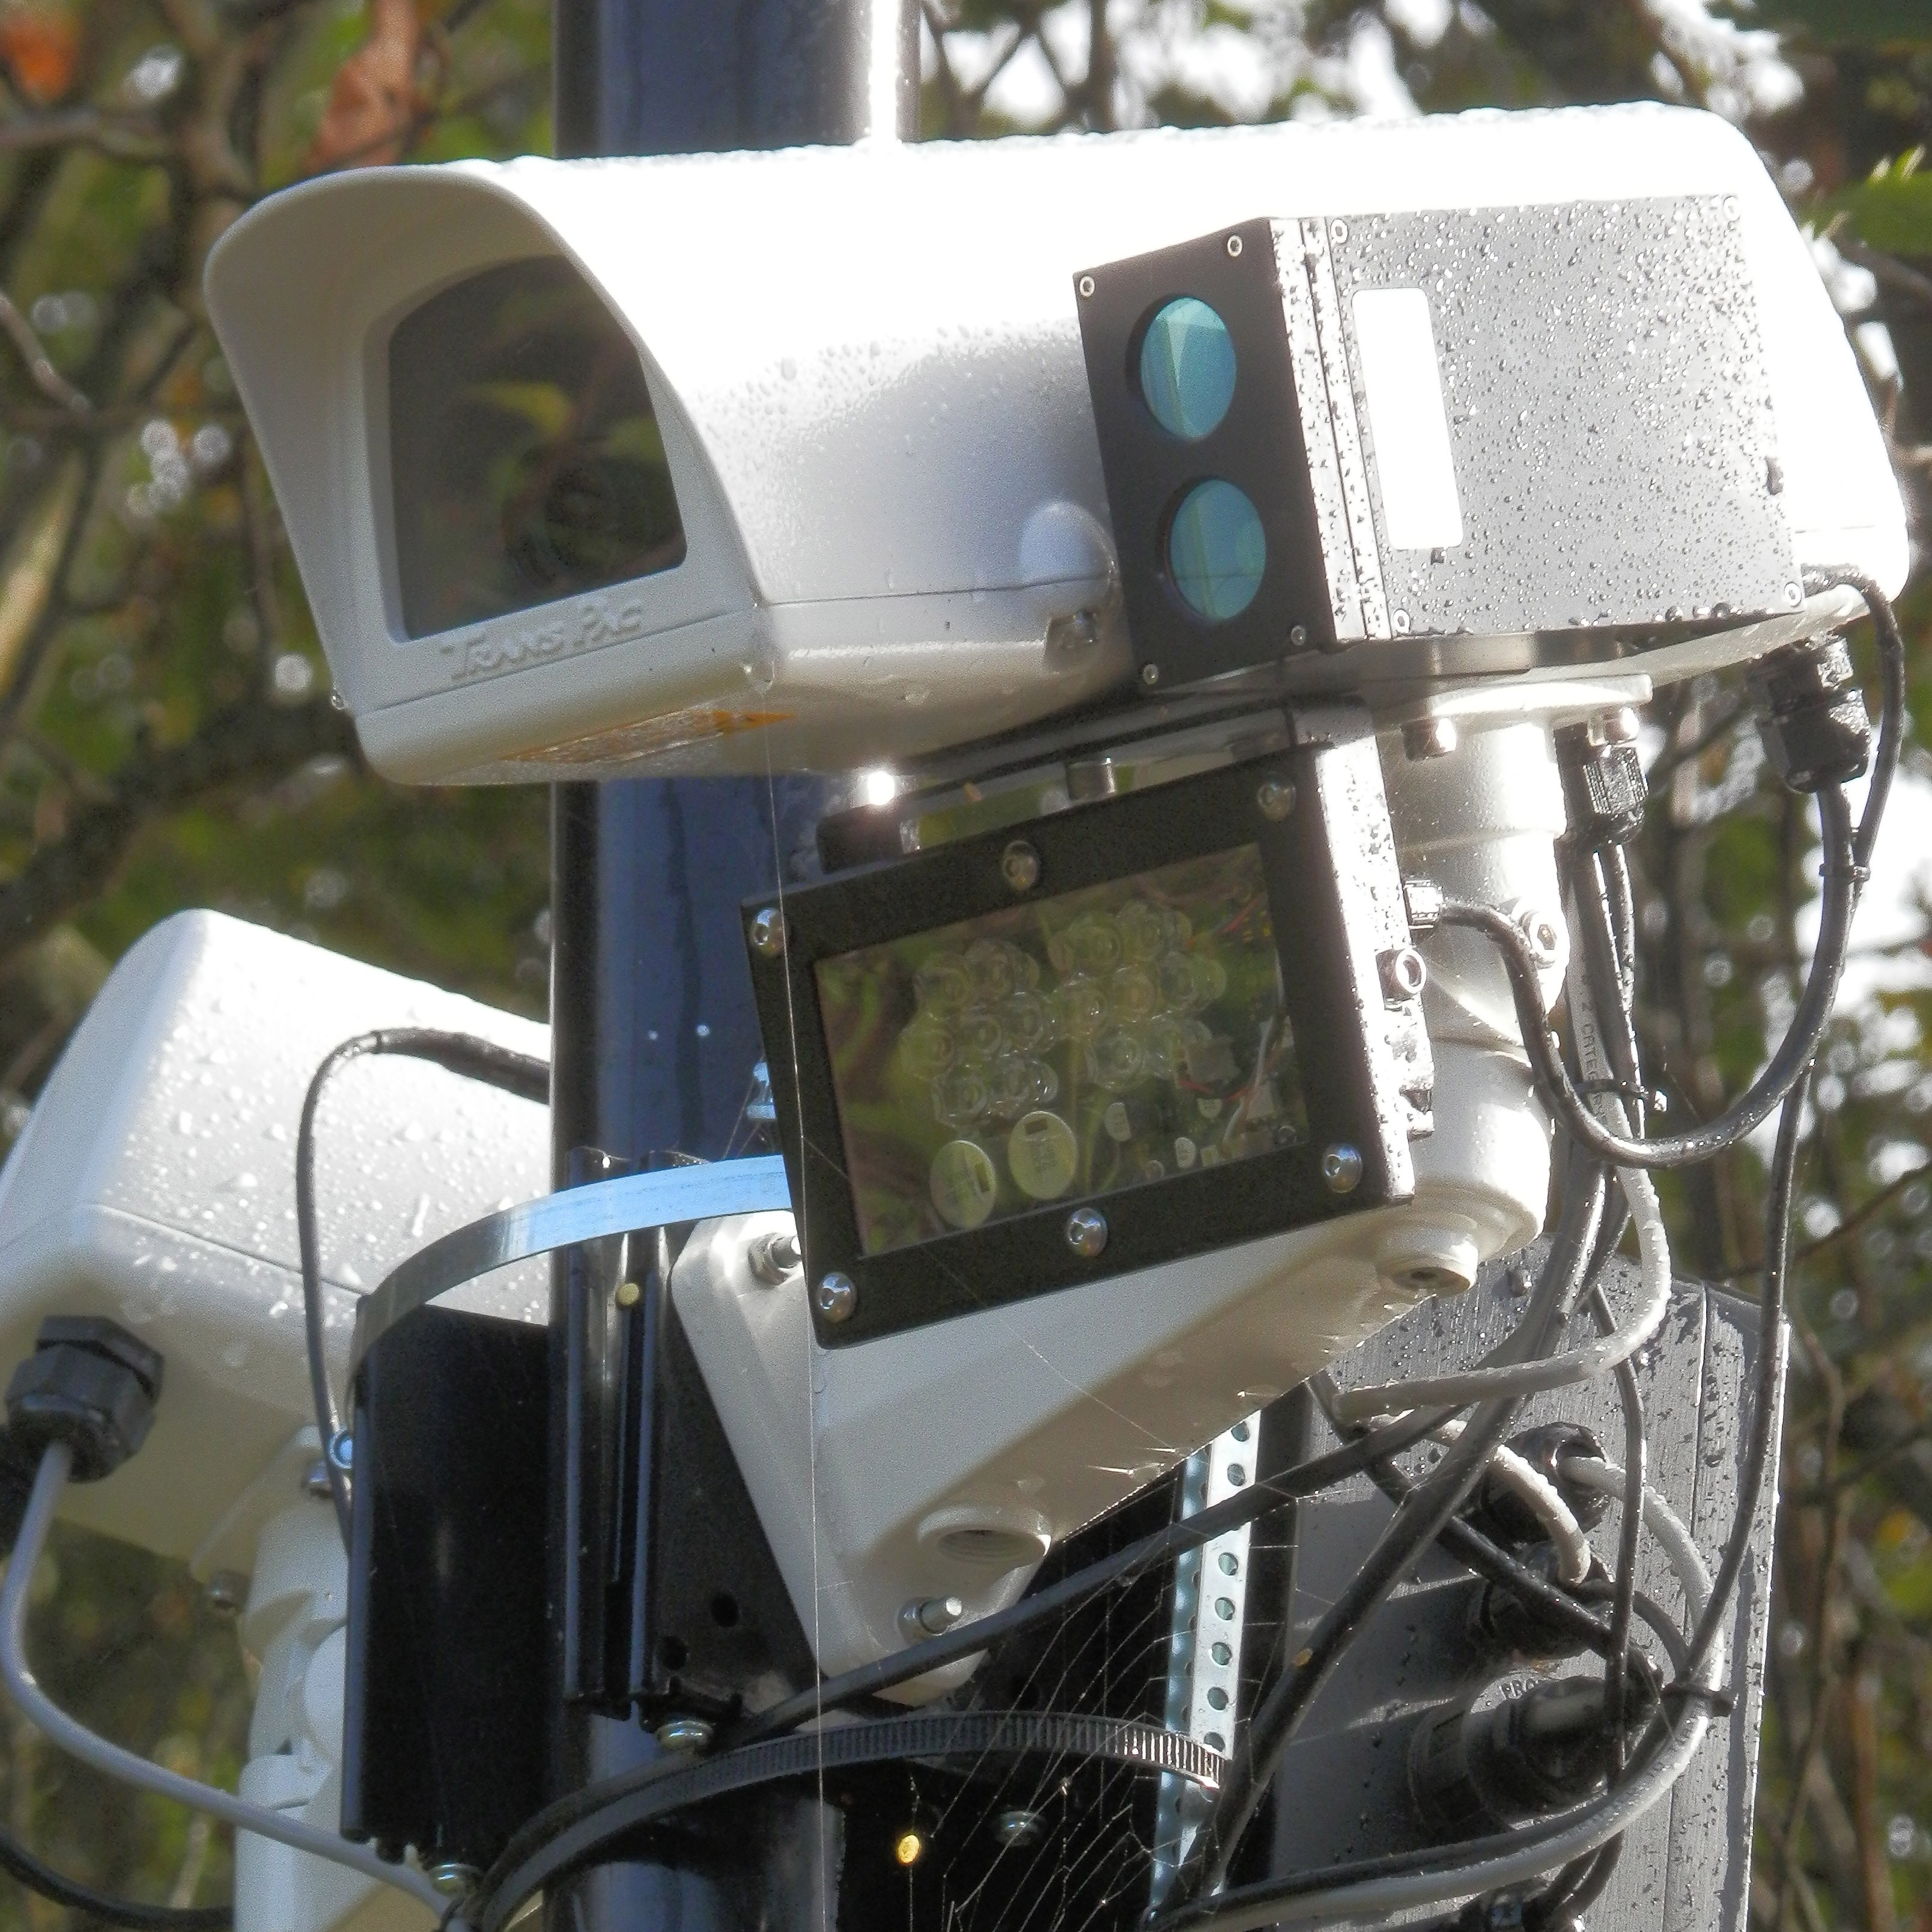 Laser modules used with ANPR cameras